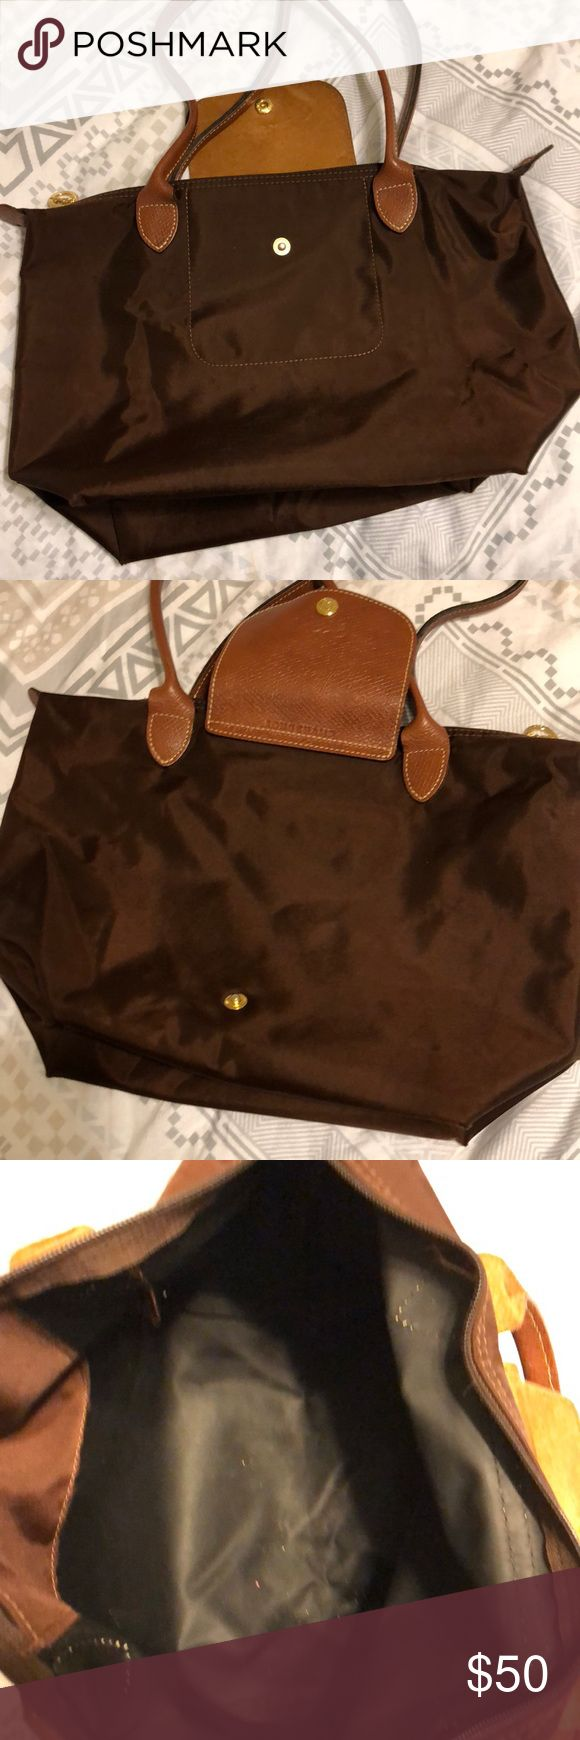 Small Longchamp bag Small long Champ bag slightly dirty on inside but nothing that can be washed out Longchamp Bags Shoulder Bags